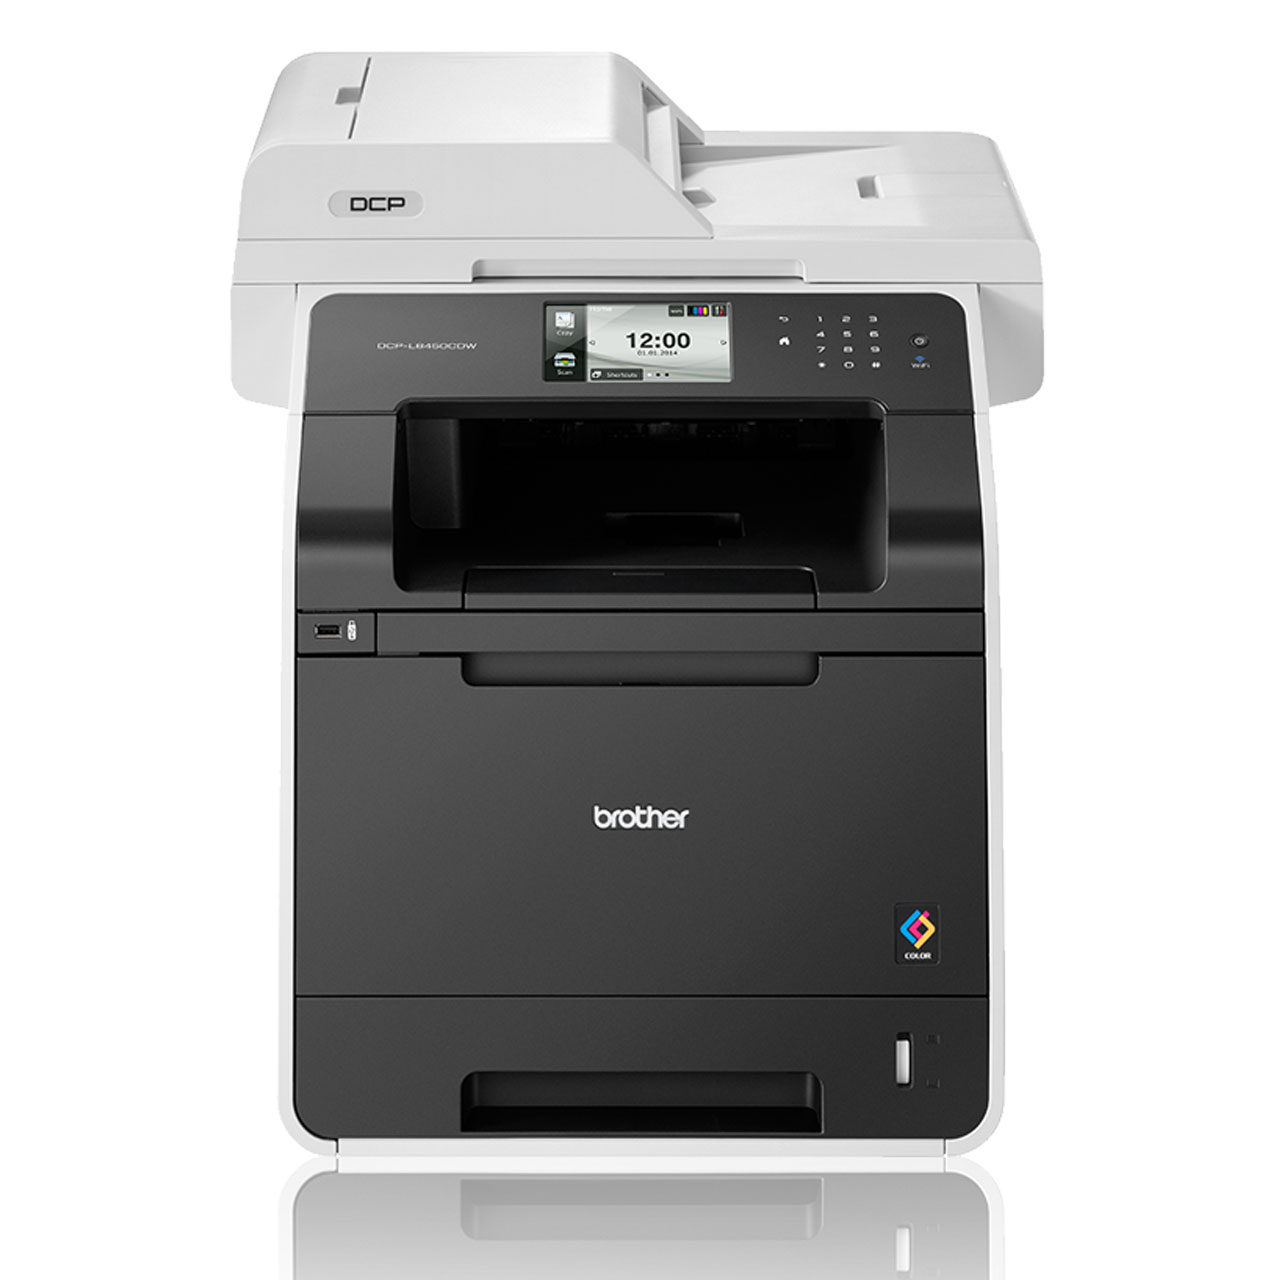 Imprimante multifonction Brother DCP-L8450CDW - Cybertek.fr - 0